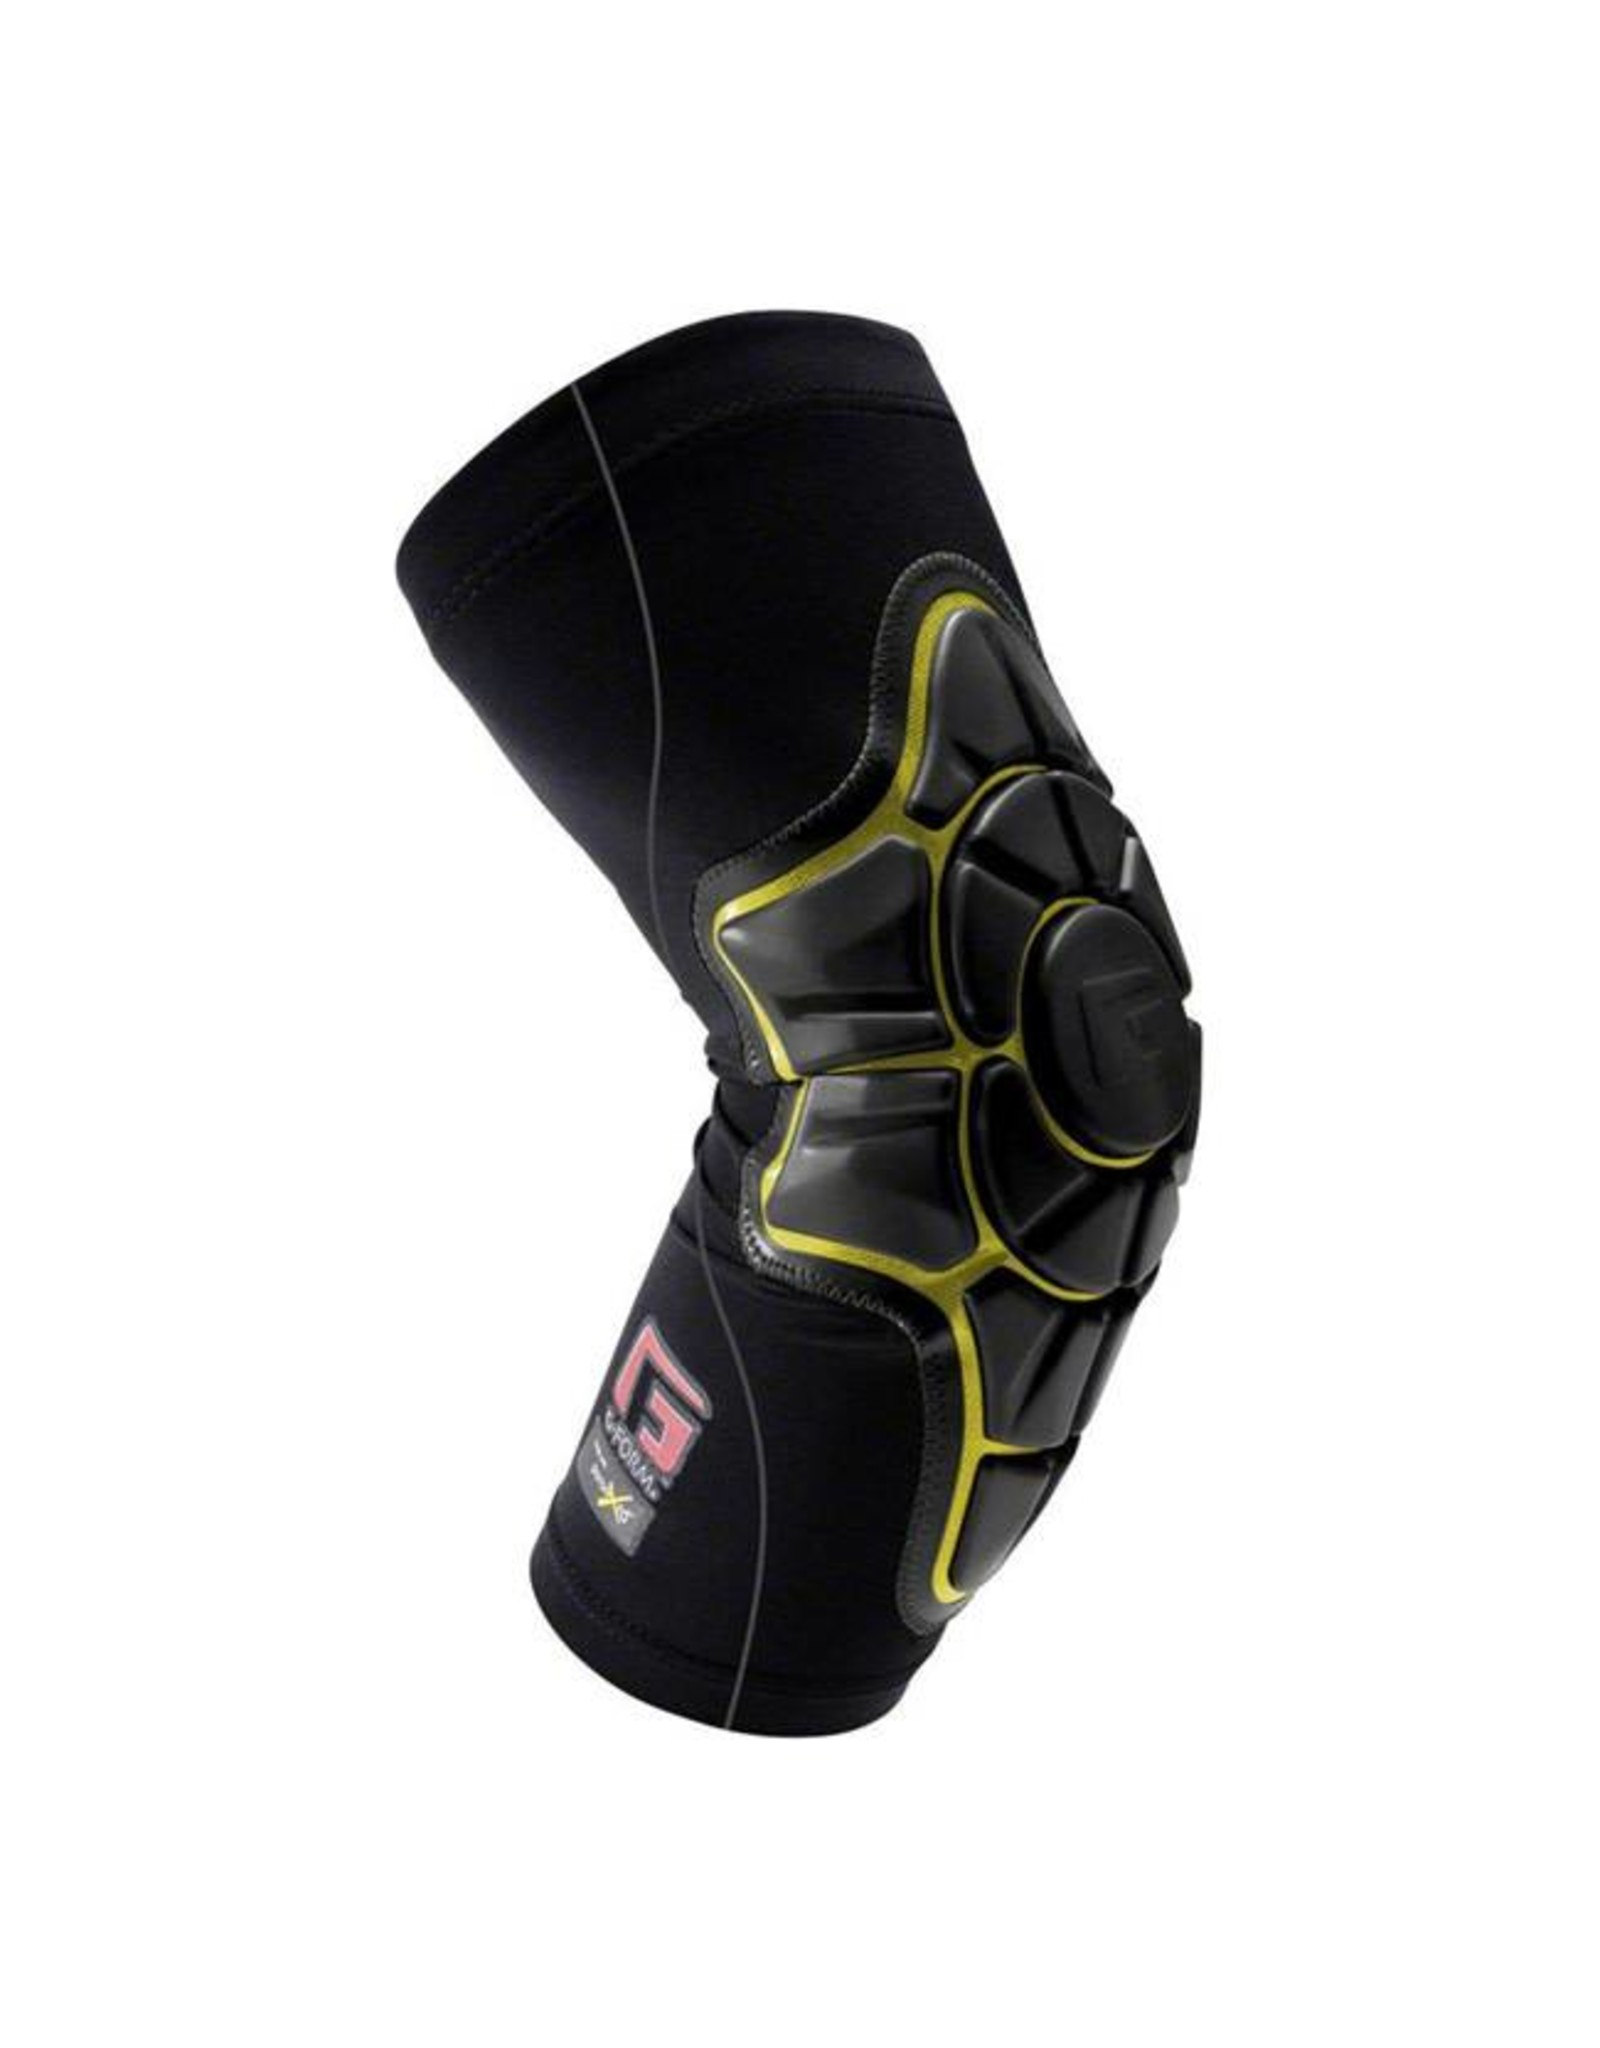 G-Form G-Form Pro-X Elbow Pad: Black/Yellow LG